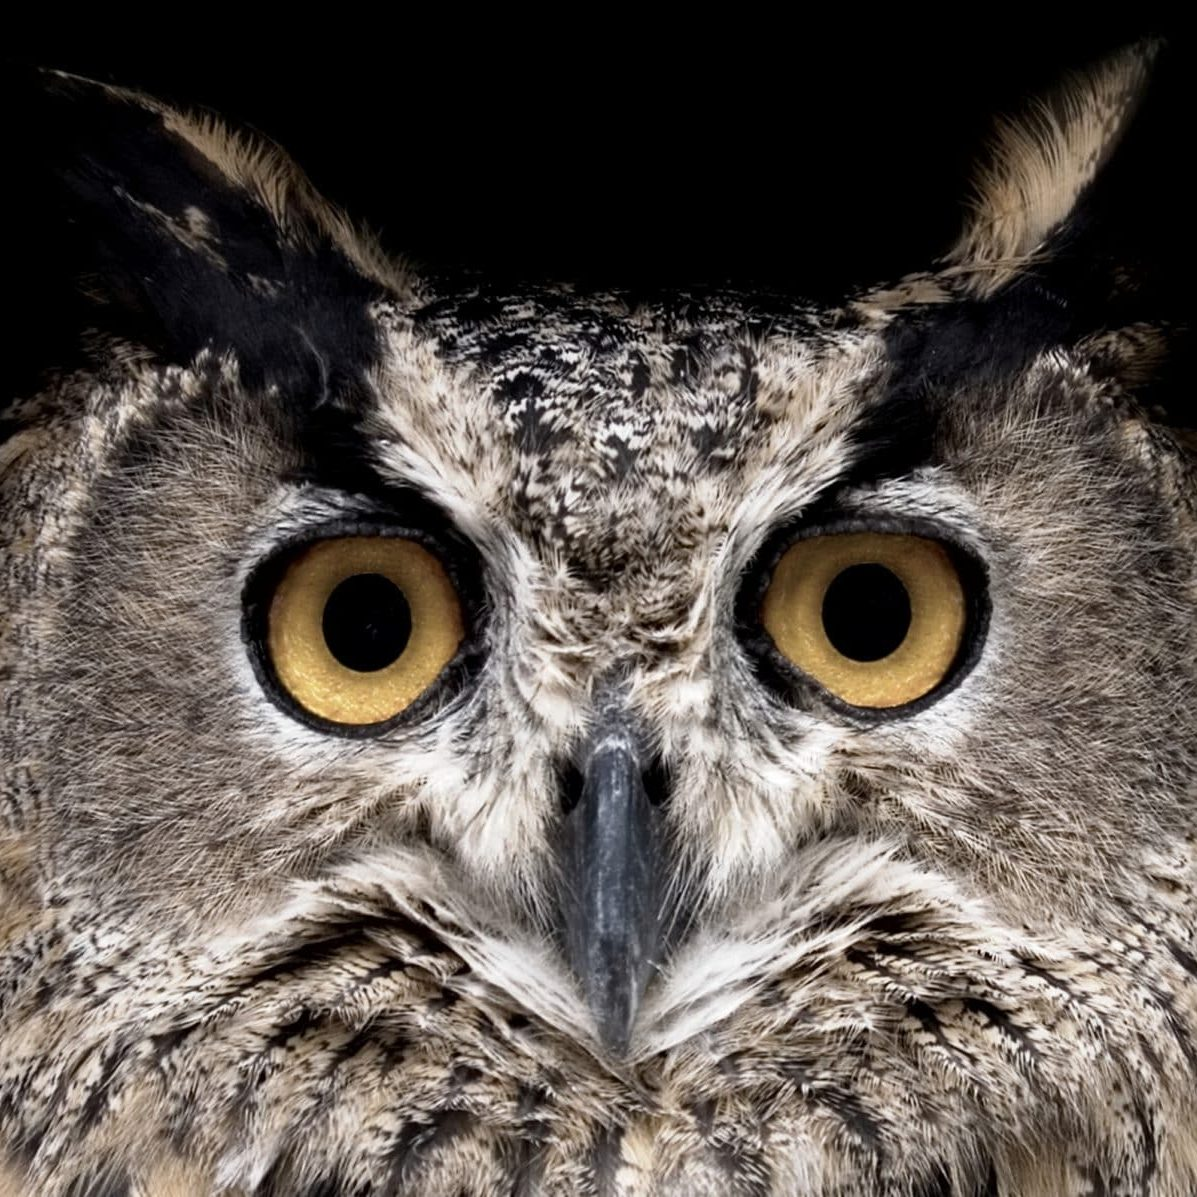 Owl watching in camera. Isolated on Black.See more images like this in: